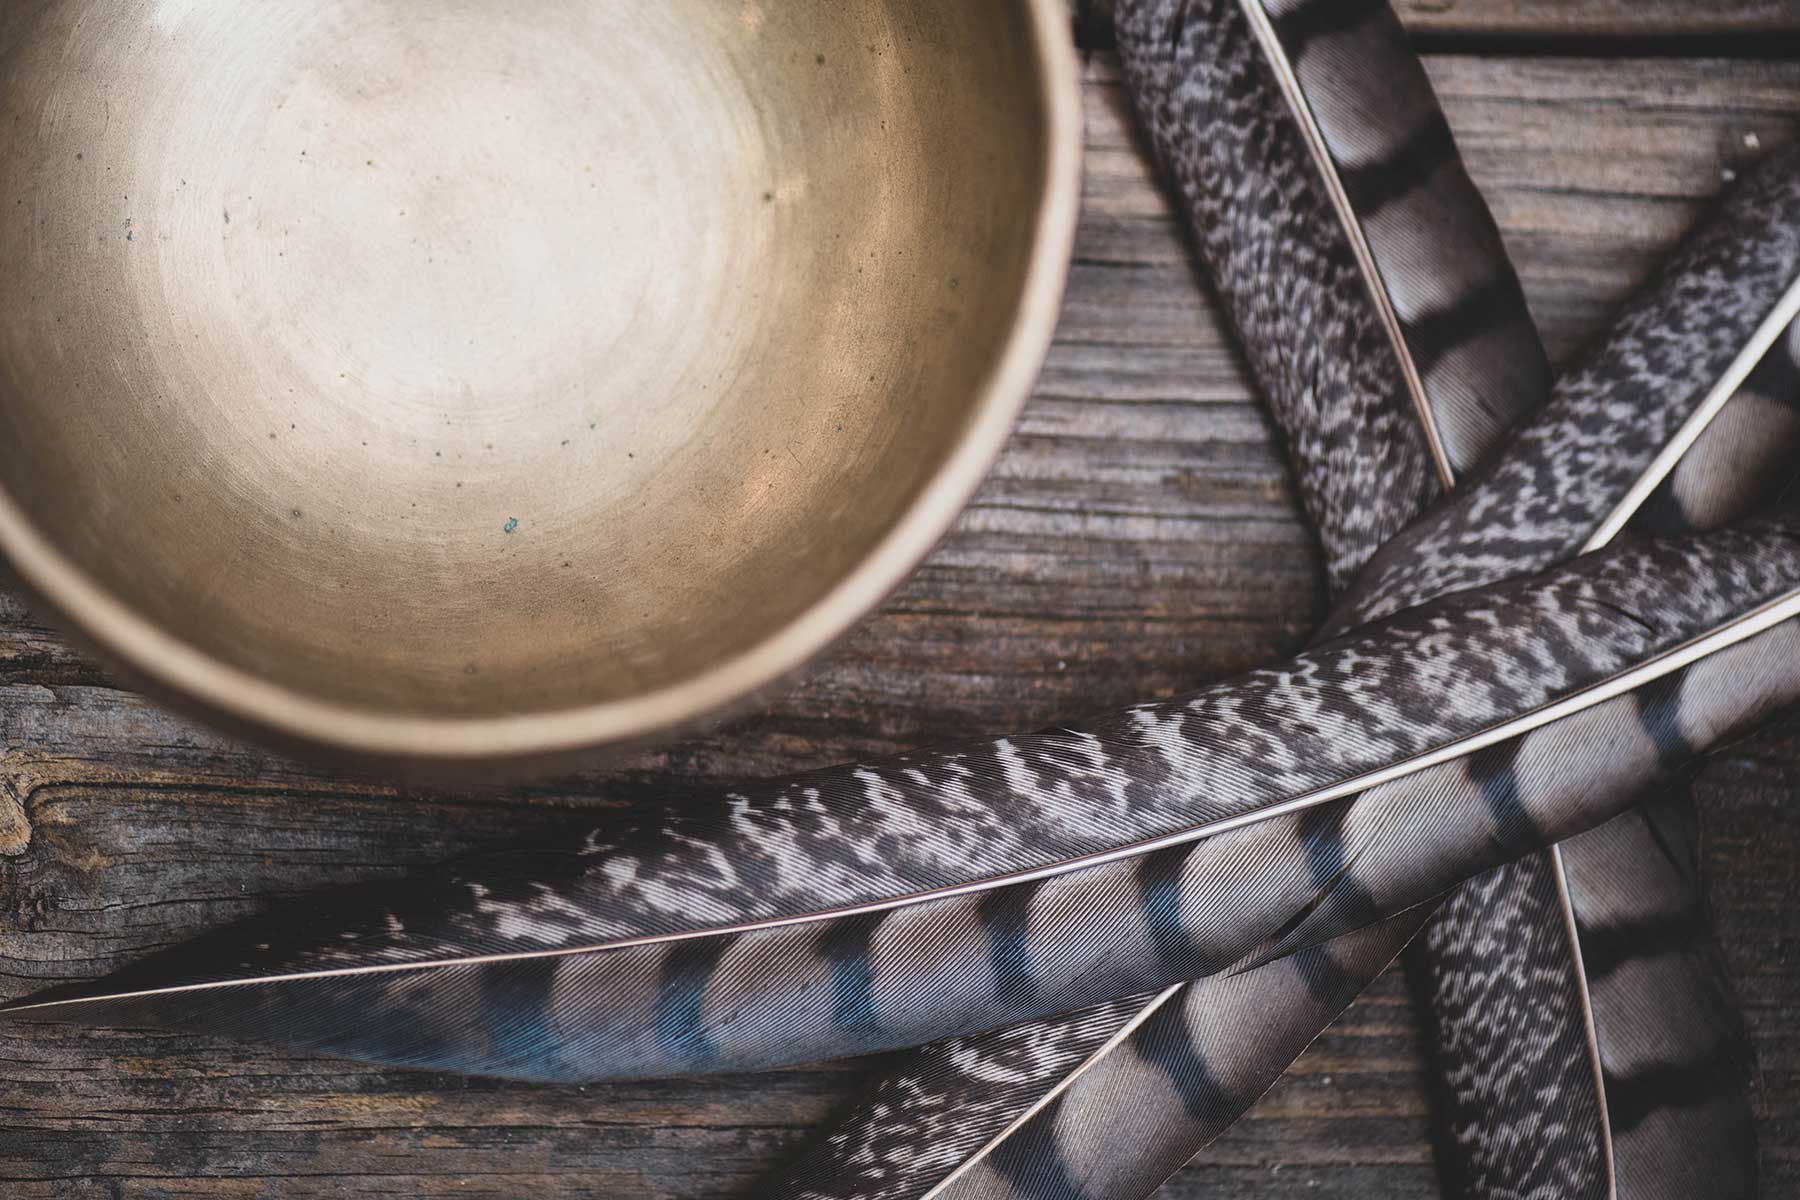 Brass Singing Bowl With Bird Feathers